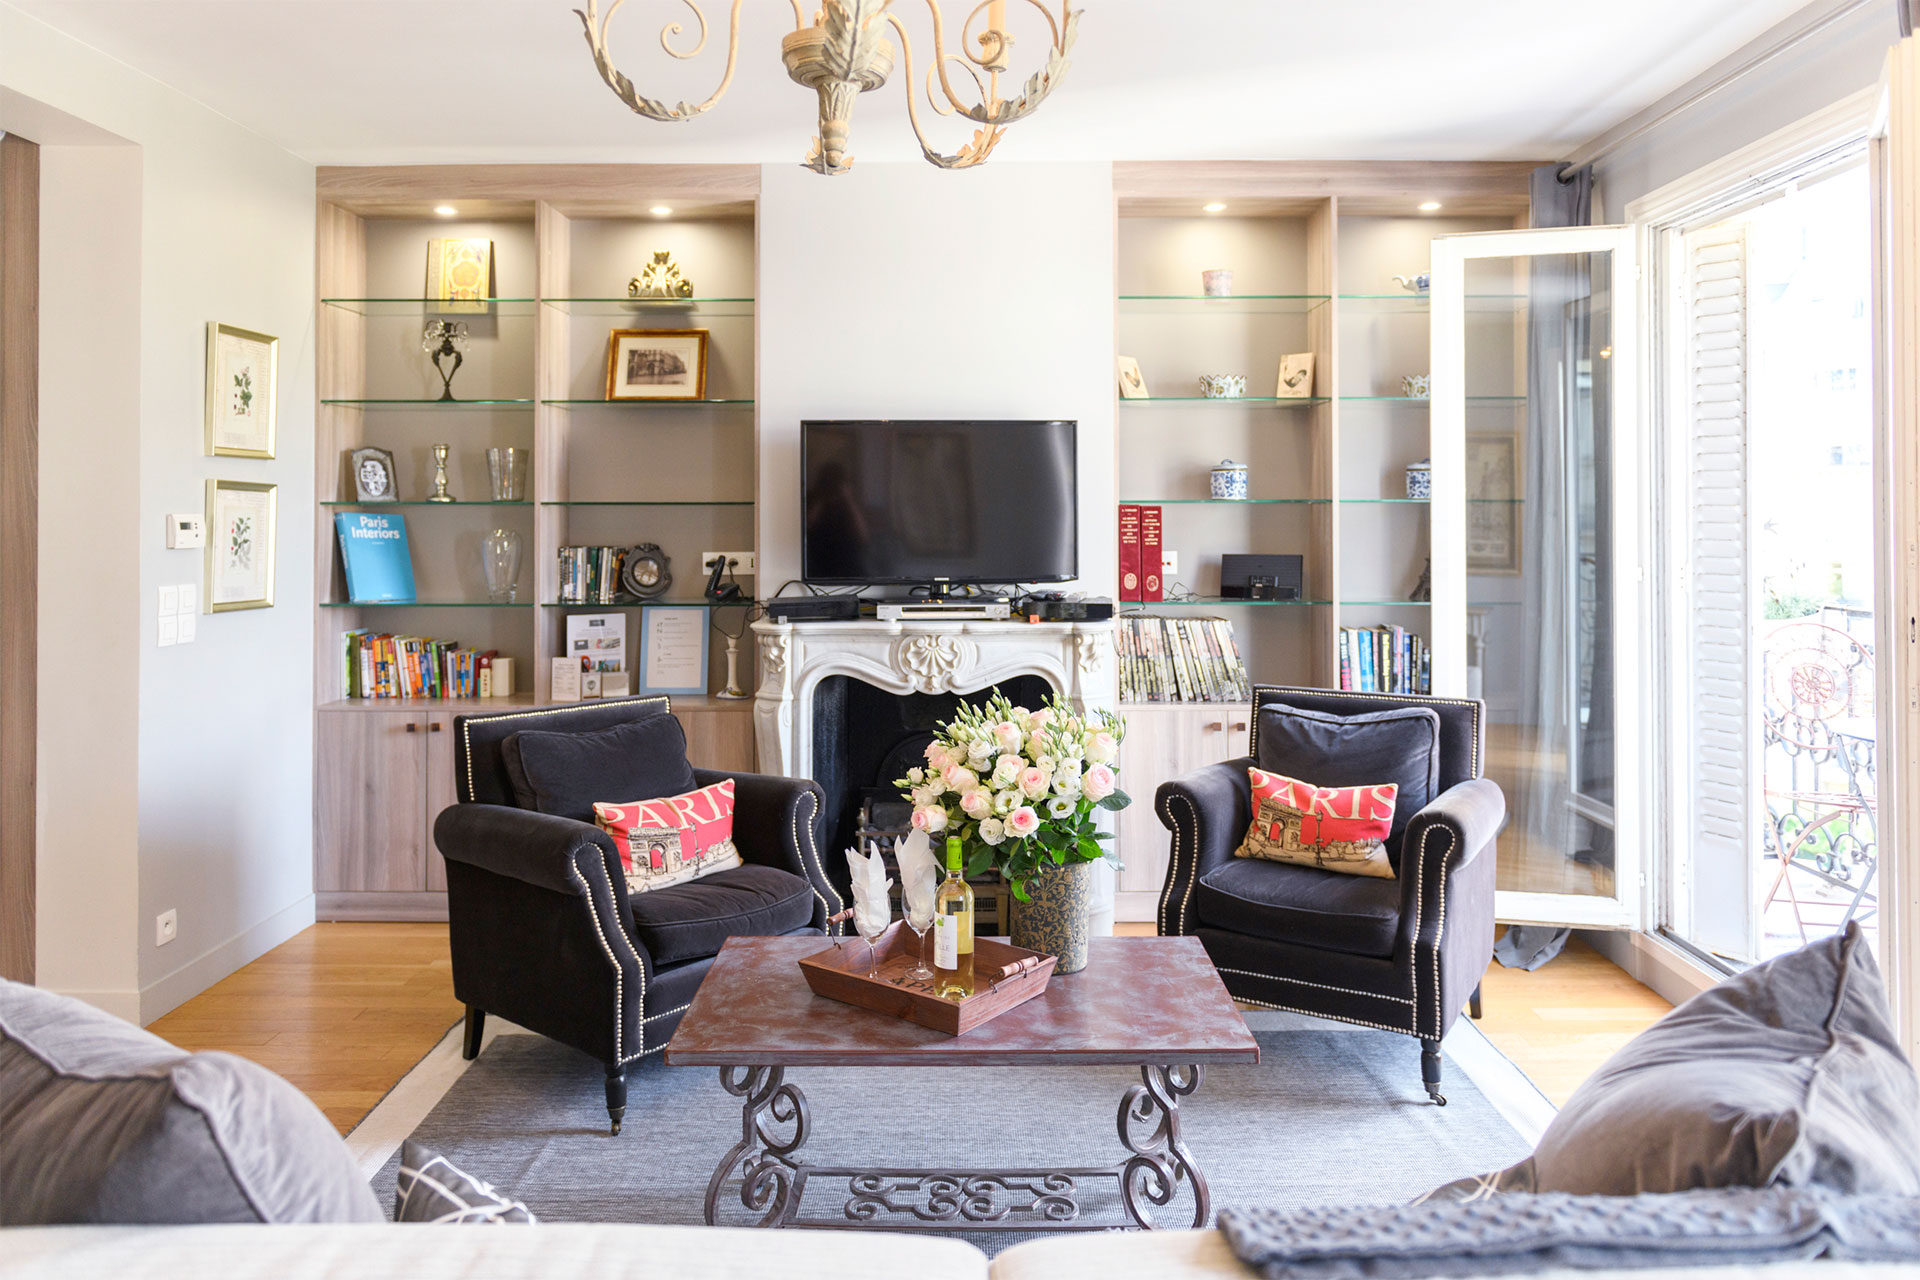 Charming Parisian fireplace in the Bordeaux vacation rental offered by Paris Perfect